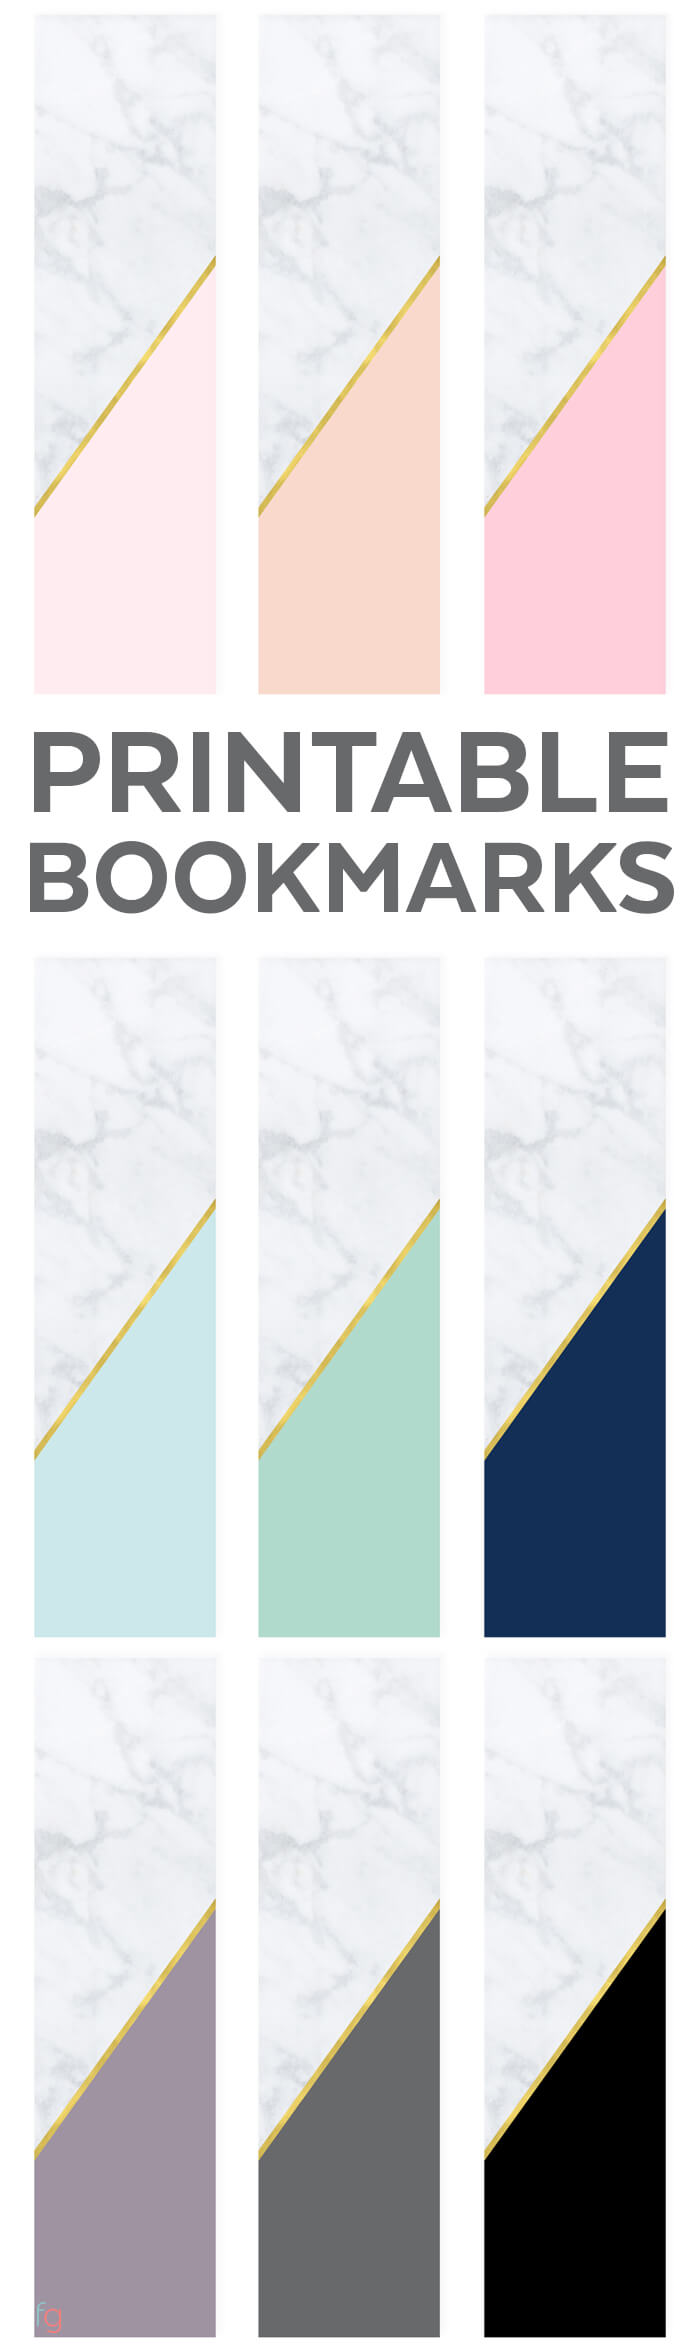 Bookmarks Printable   Free Printable Bookmarks Free   Book Lovers   Free Printable Bookmarks for Adults   Modern Printables   Marble and Gold